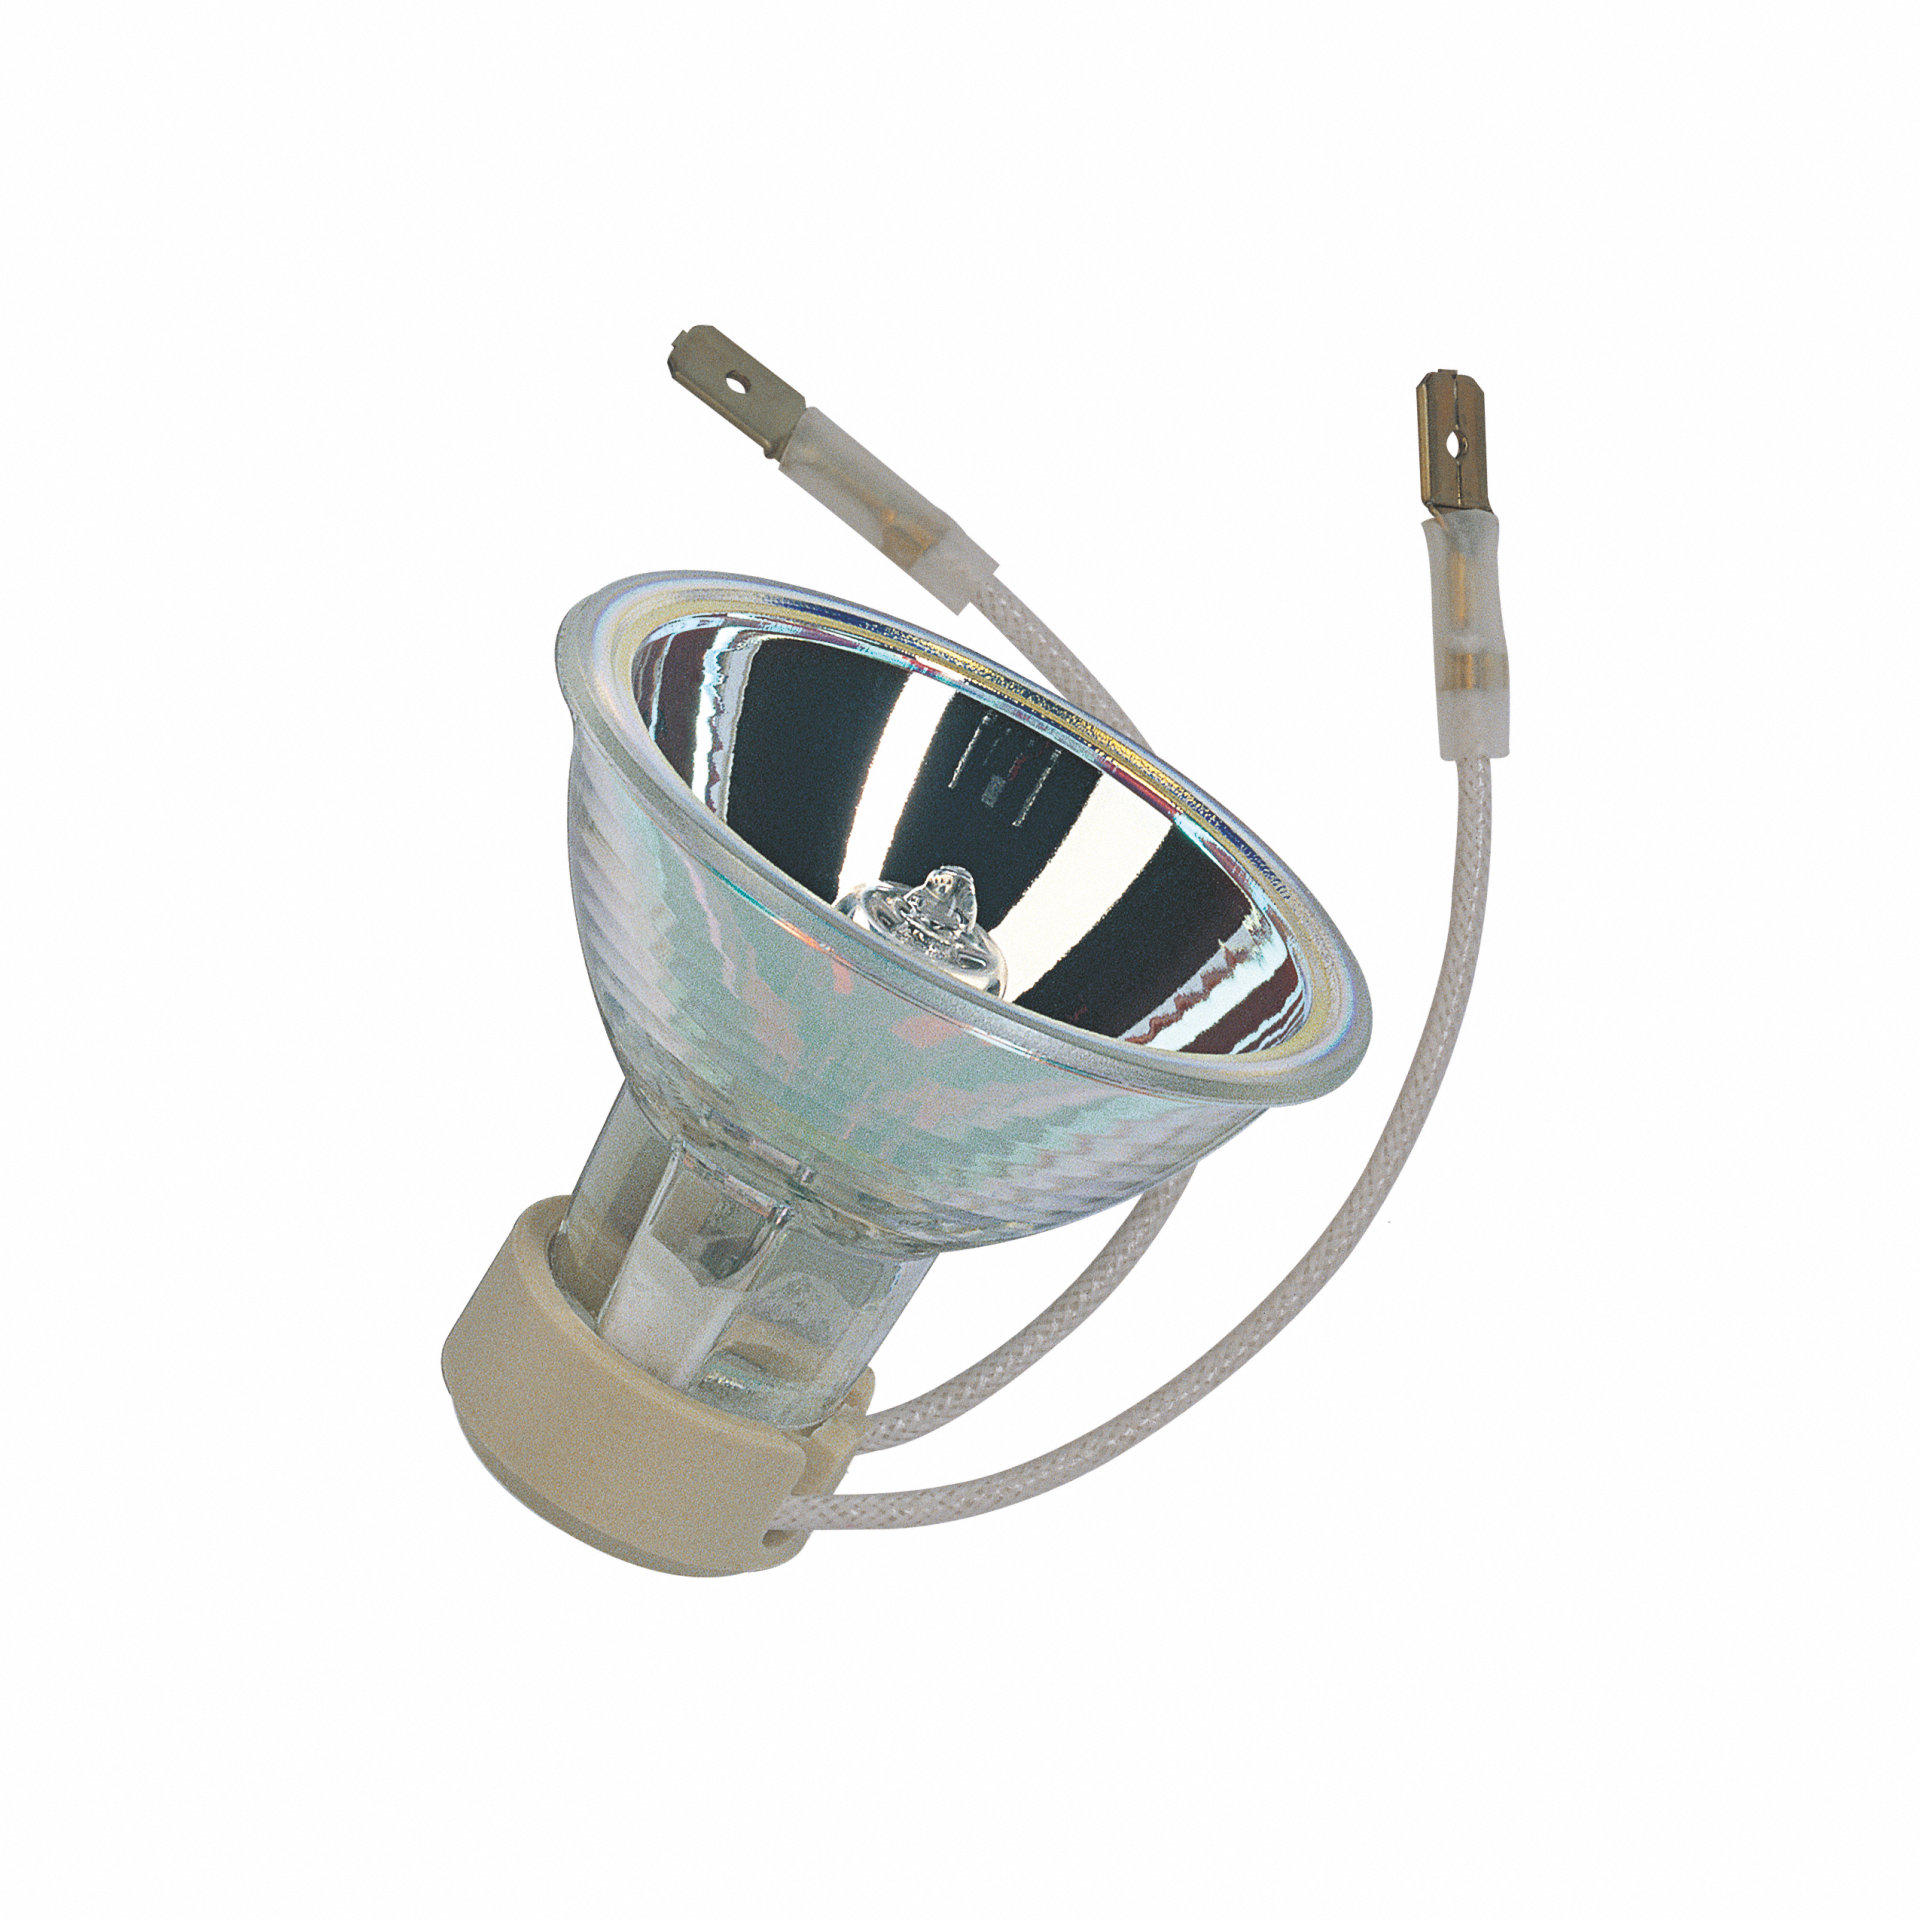 SIRIUS Low-voltage halogen lamps with dichroic reflector, road traffic